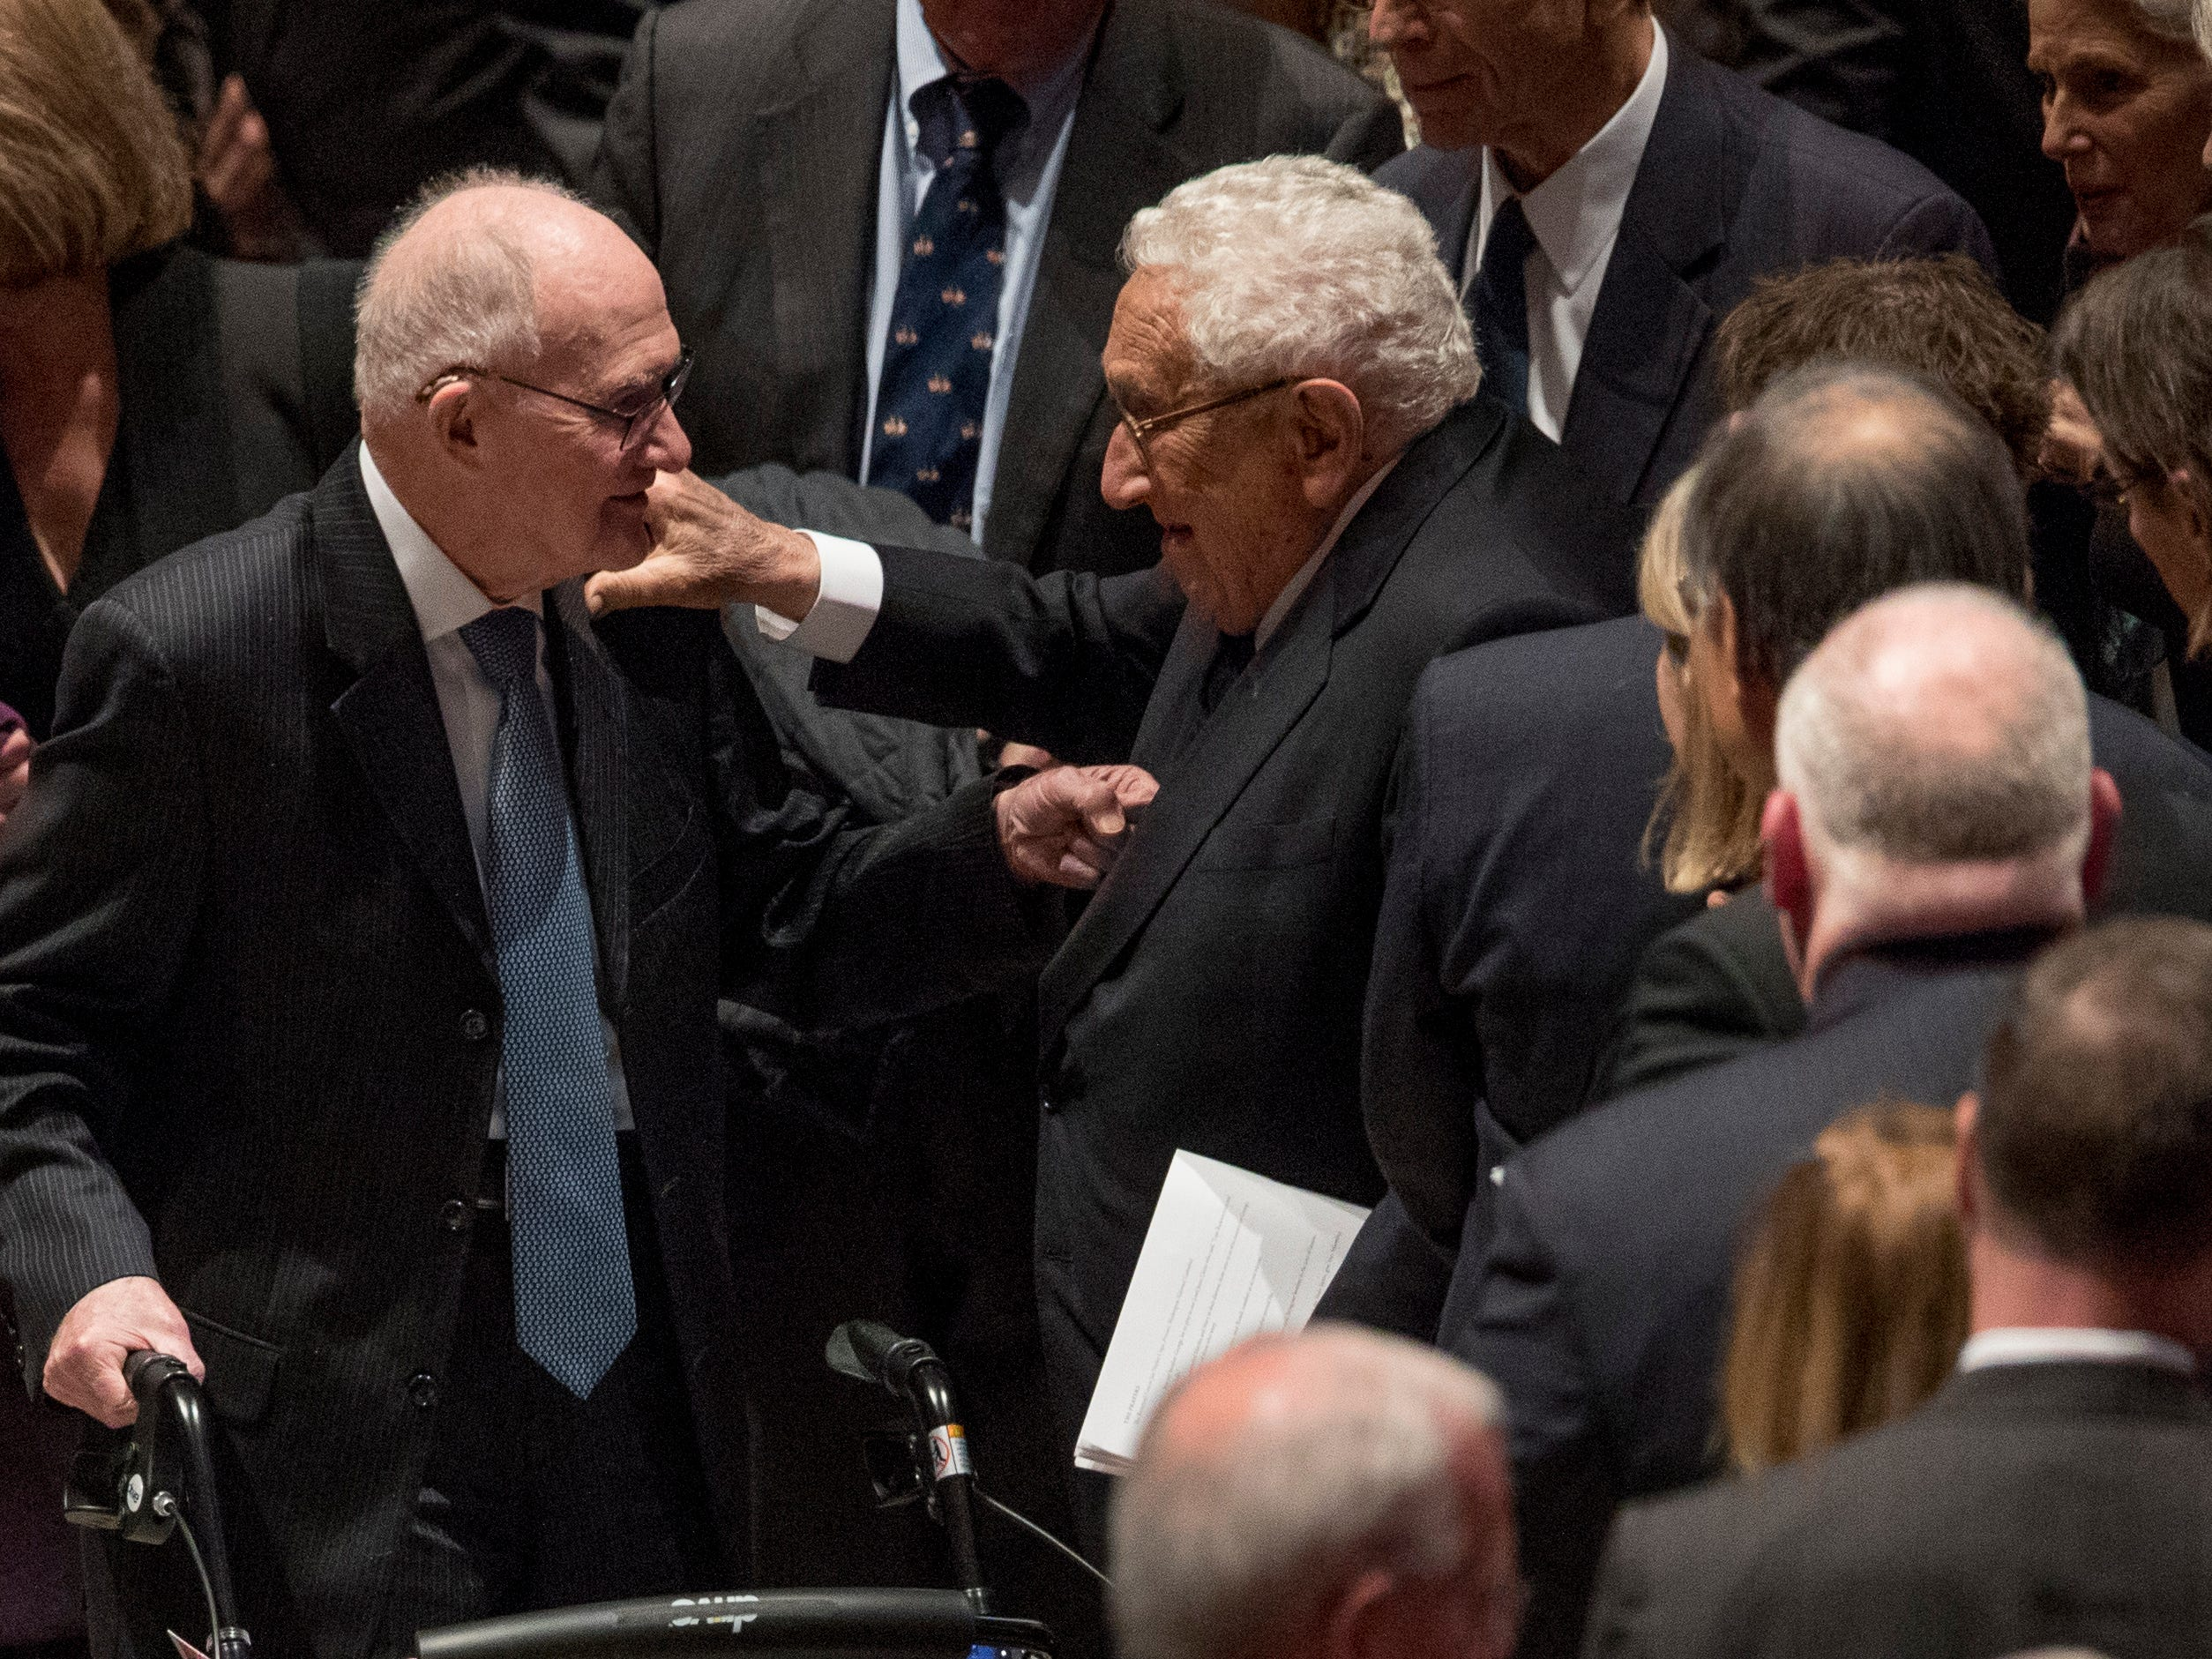 Brent Scowcroft, left, national security adviser for President George H.W. Bush, and former Secretary of State Henry Kissinger exchange greetings following the State Funeral.